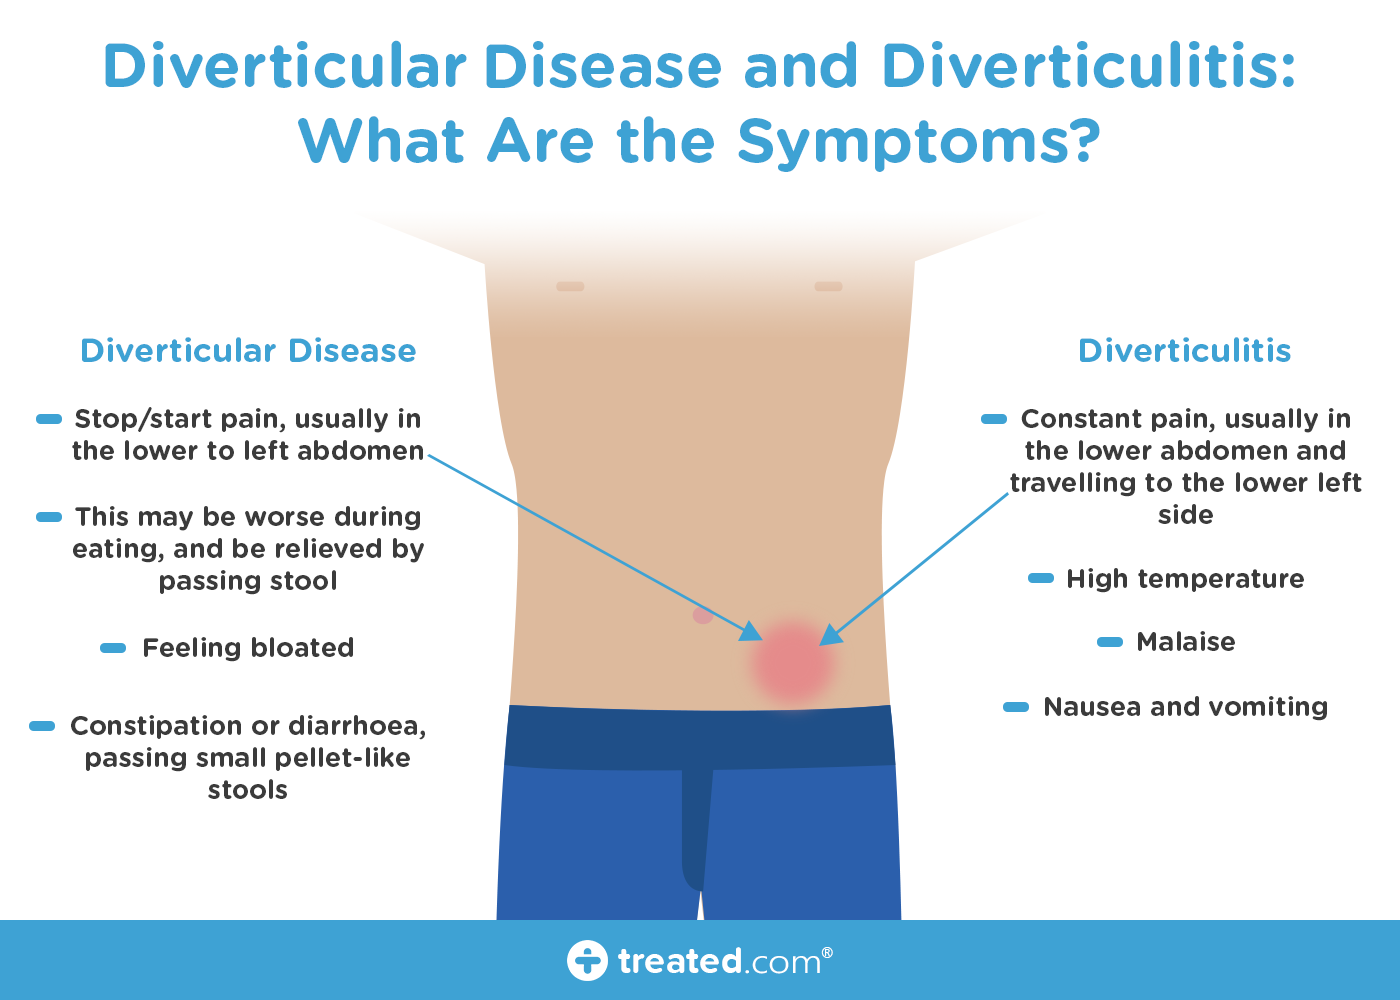 Diverticular Disease And Diverticulitis Are They Related